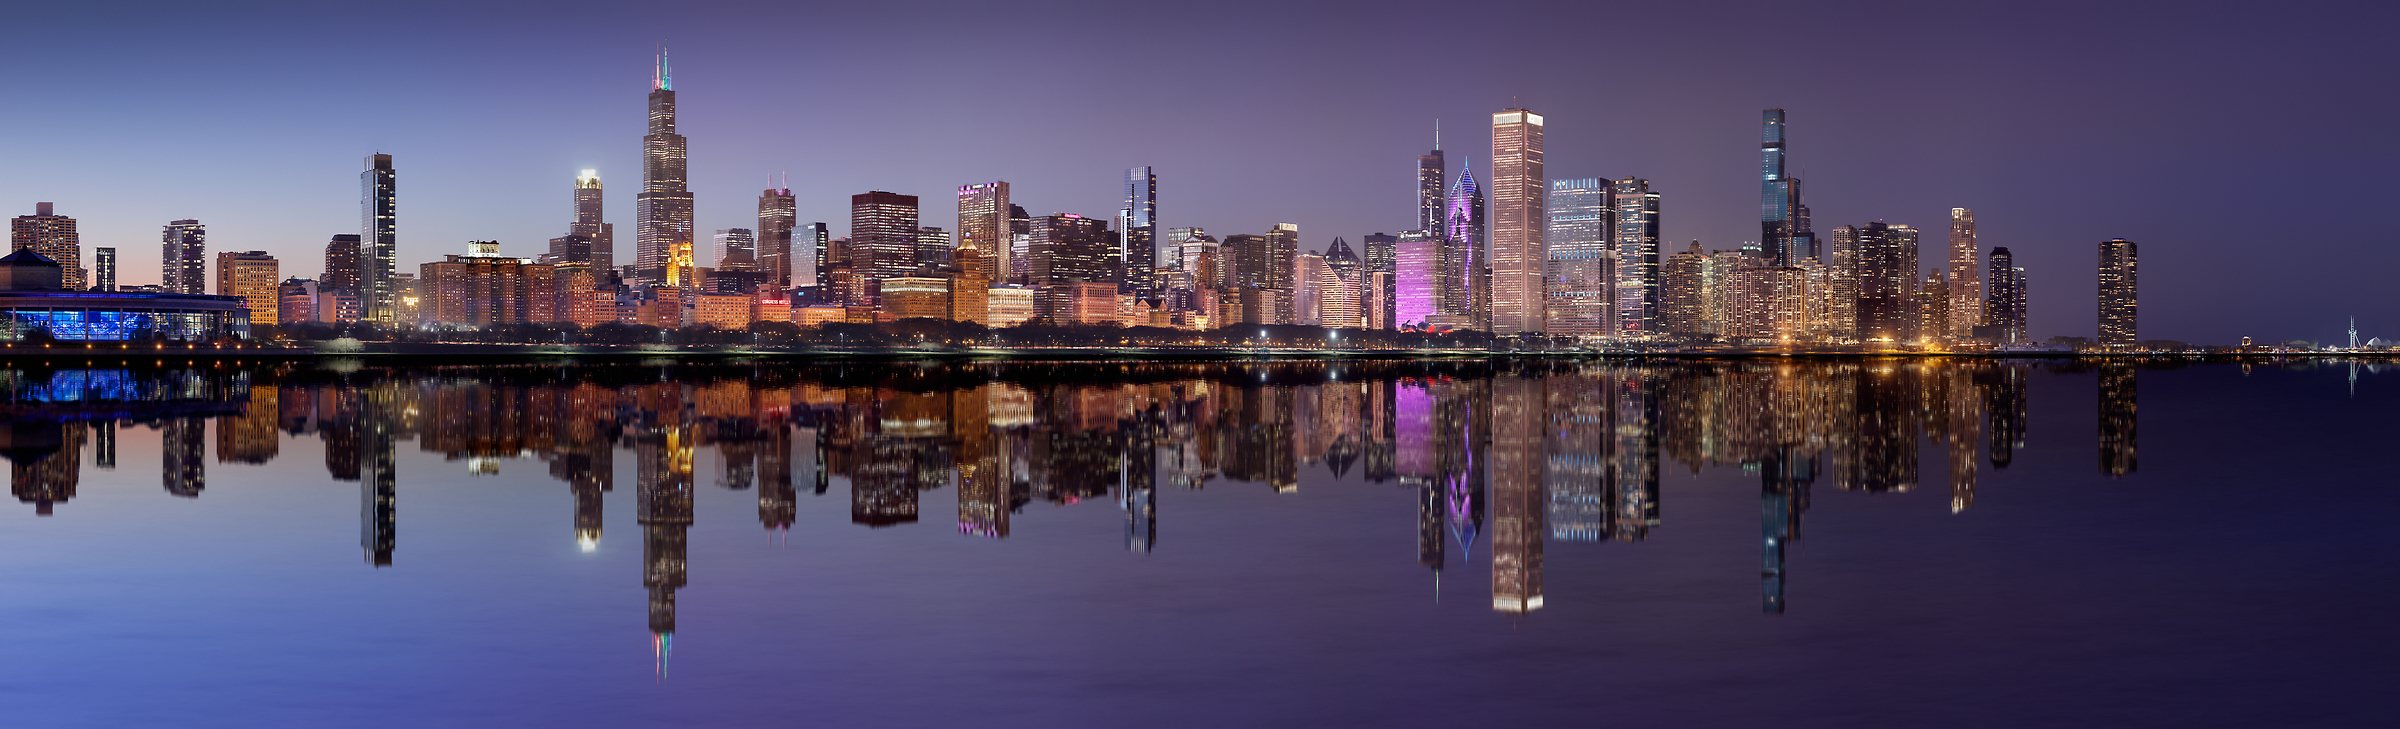 1185 megapixels! A very high resolution, large-format VAST photo print of the Chicago skyline at night with Lake Michigan in the foreground; cityscape photograph created by Phil Crawshay in Chicago, Illinois